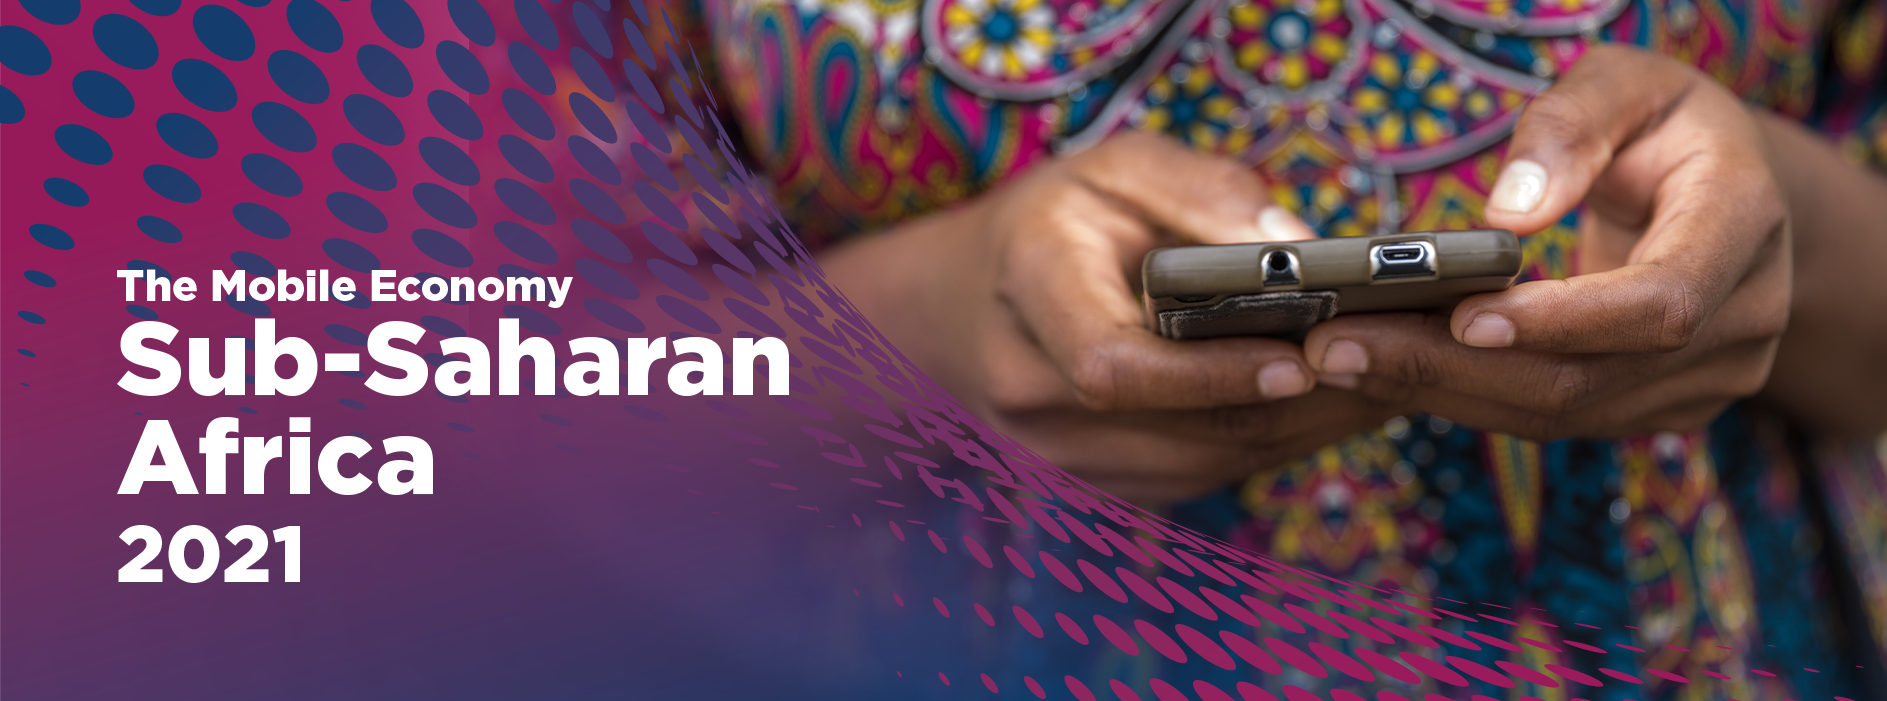 Download the Mobile Economy Sub-Saharan Africa